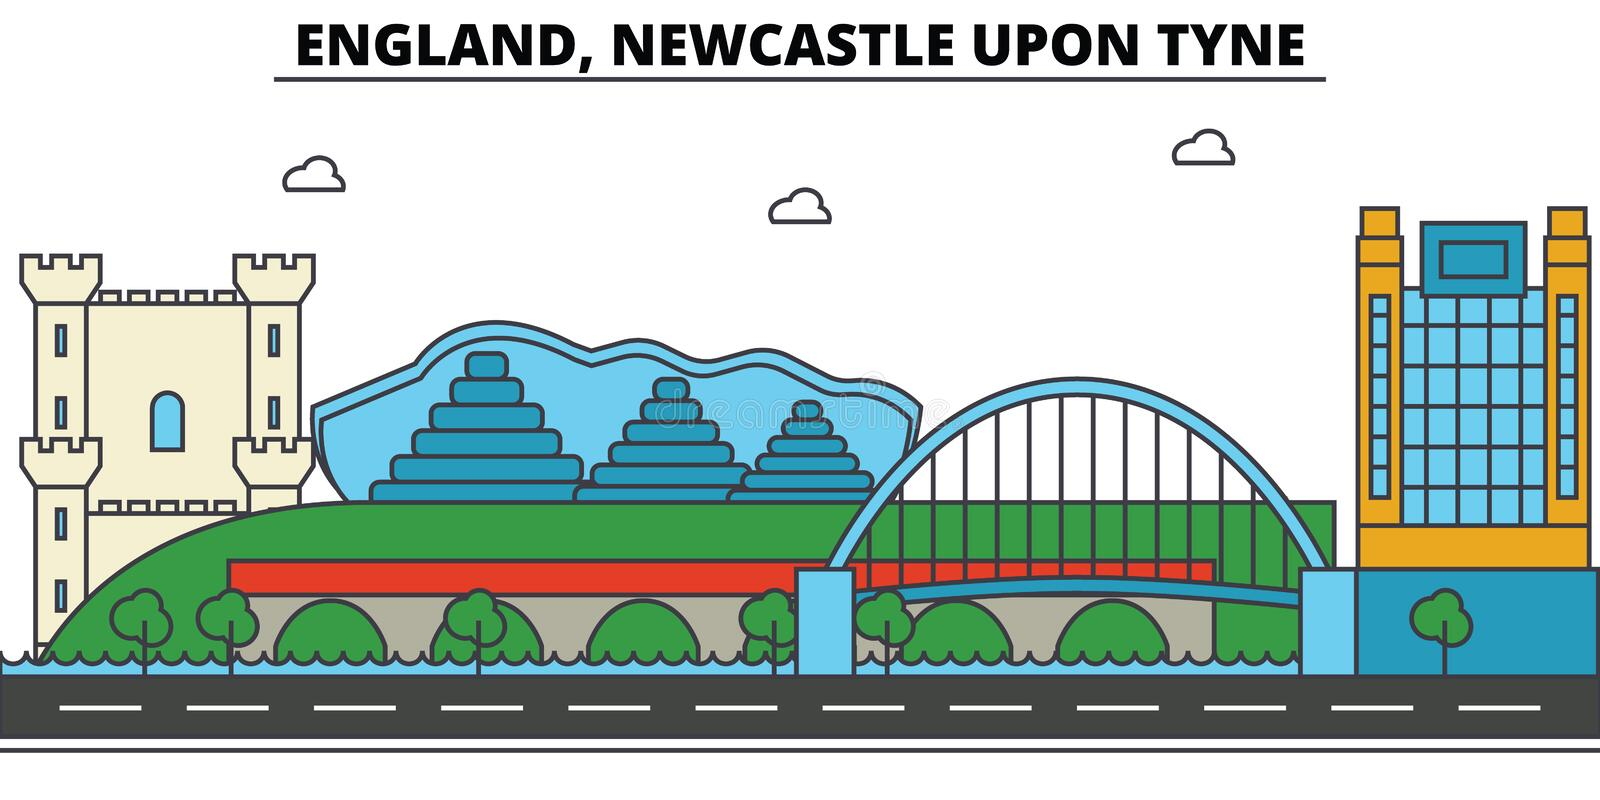 Engeland, Newcastle op de Tyne De architectuur van de stadshorizon stock illustratie